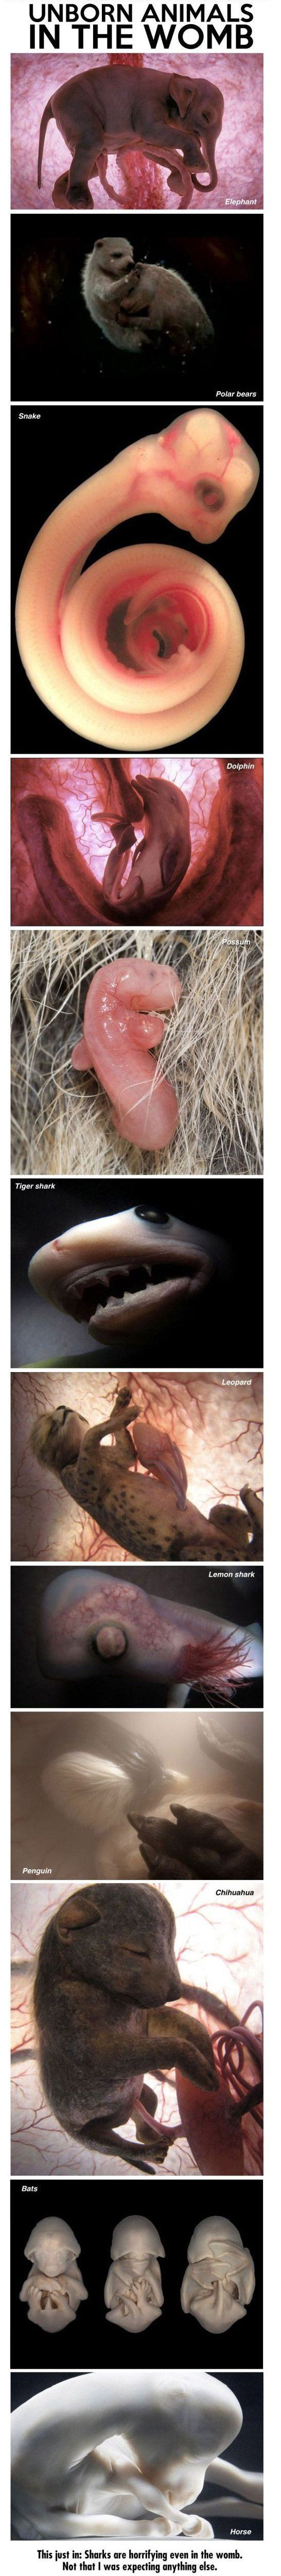 Best Baby Animals In The Womb Images On Pinterest - 14 incredible photos animals inside womb